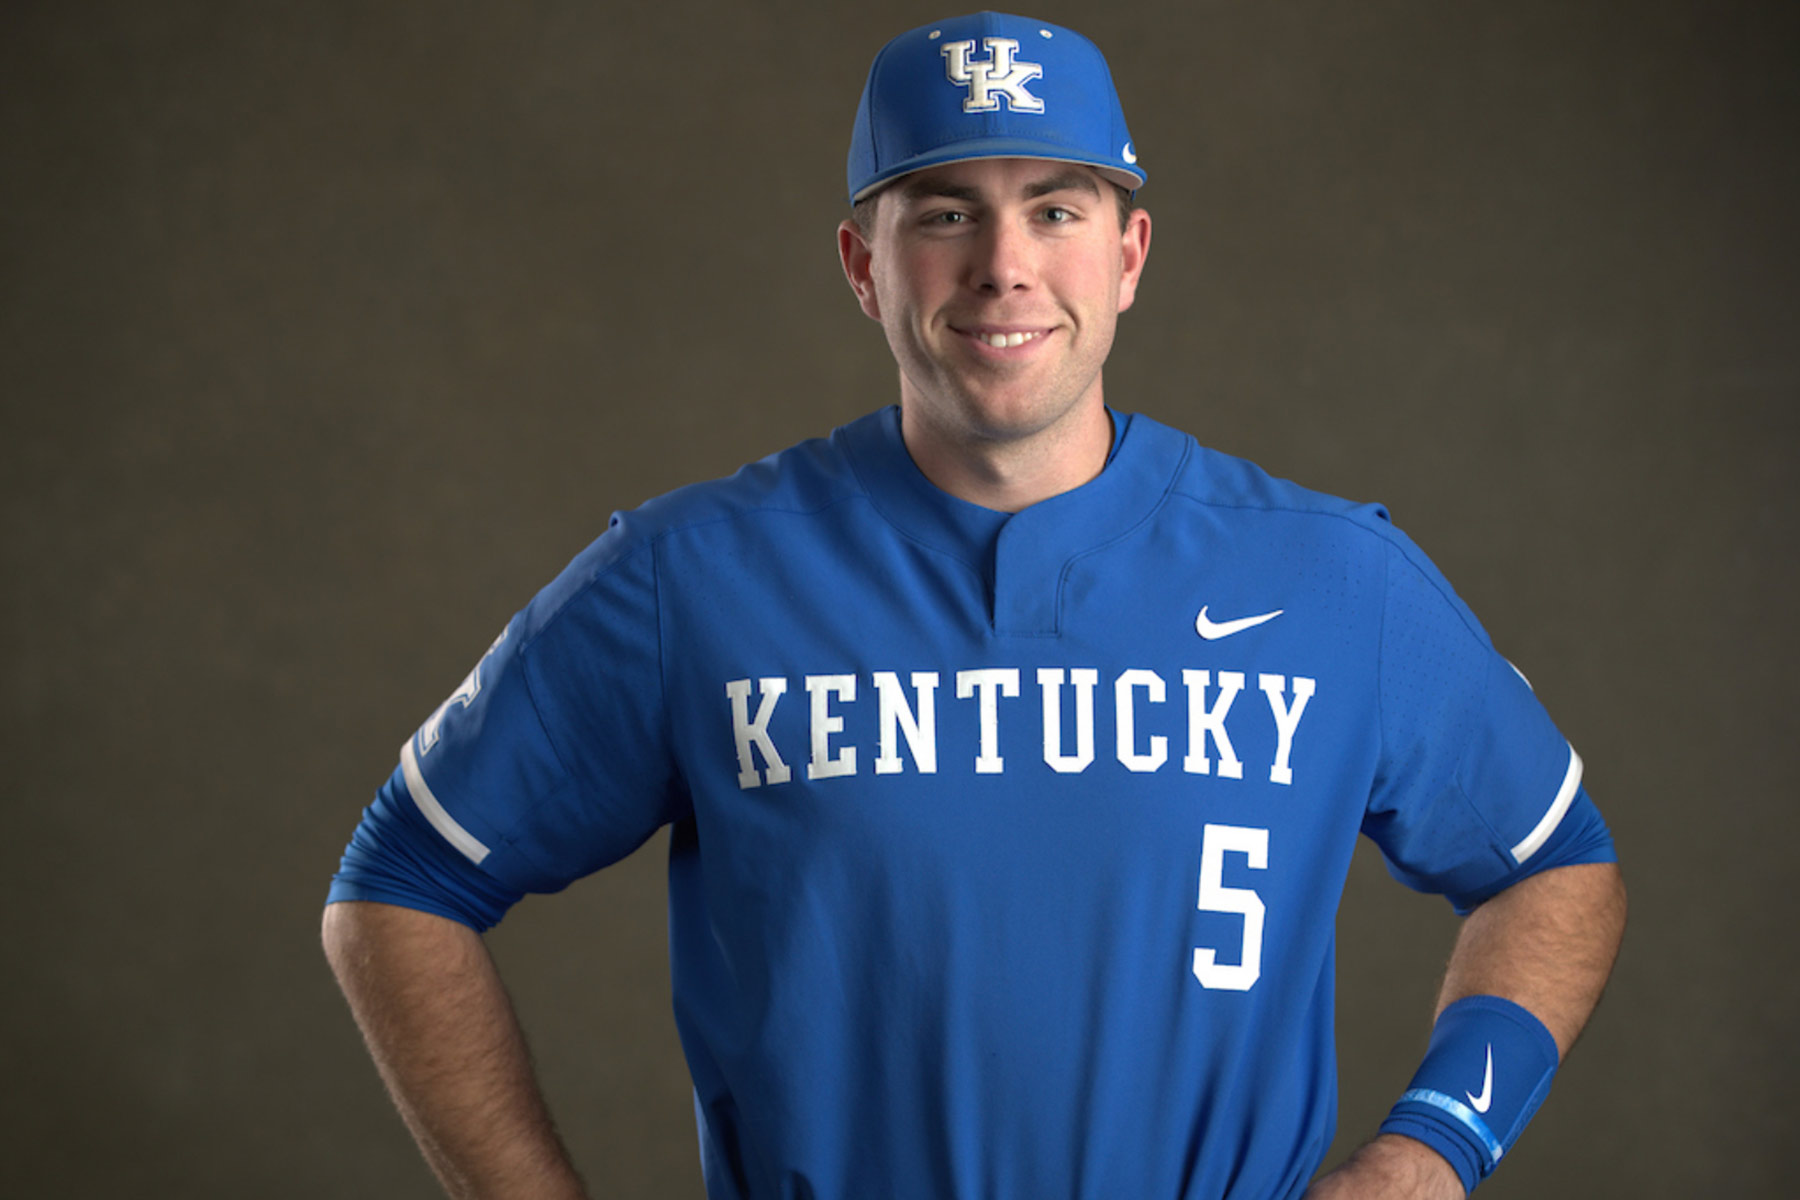 T.J. Collett, a young white man with brown hair, poses for a portrait against a gray backdrop. He has a Kentucky baseball uniform on, is standing with his hands on his hips, and is smiling.